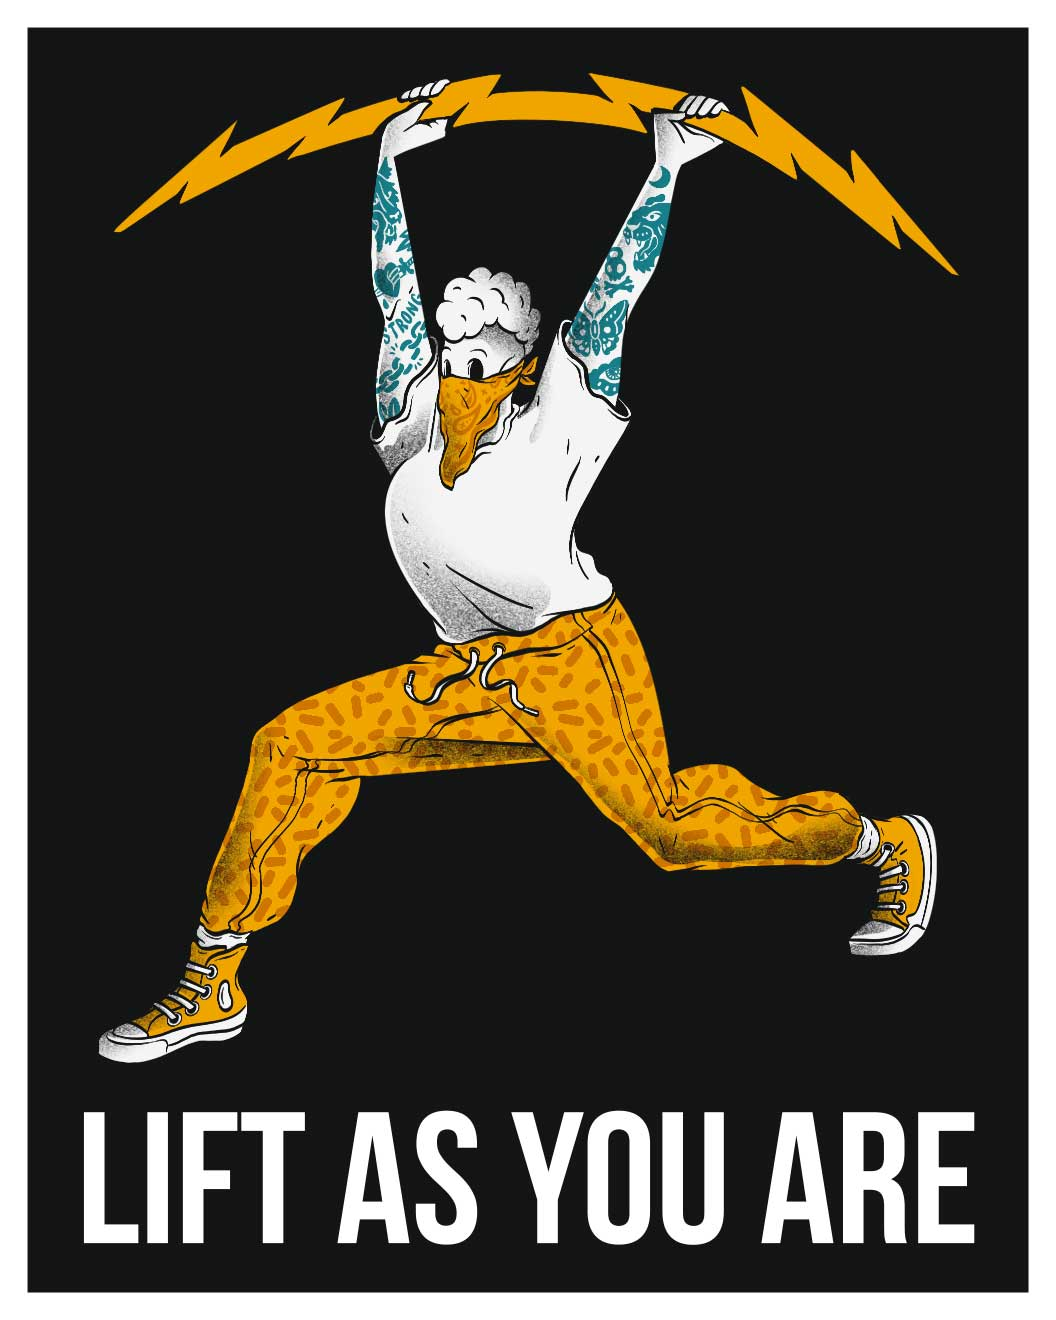 Lift As You Are